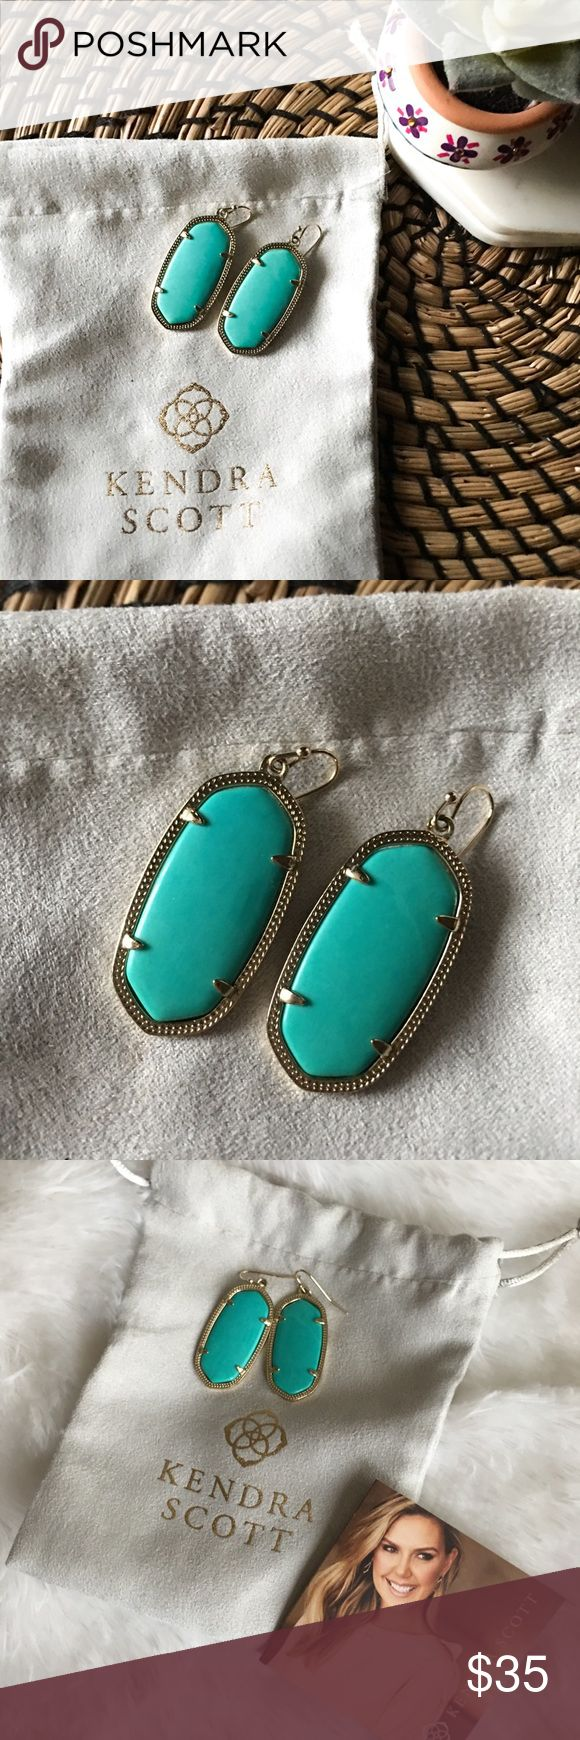 Kendra Scott Elle Earrings Really cute Kendra Scott Elle Earrings - has been used twice only. Will come with the pouch and care card. In excellent condition 💖 Kendra Scott Jewelry Earrings